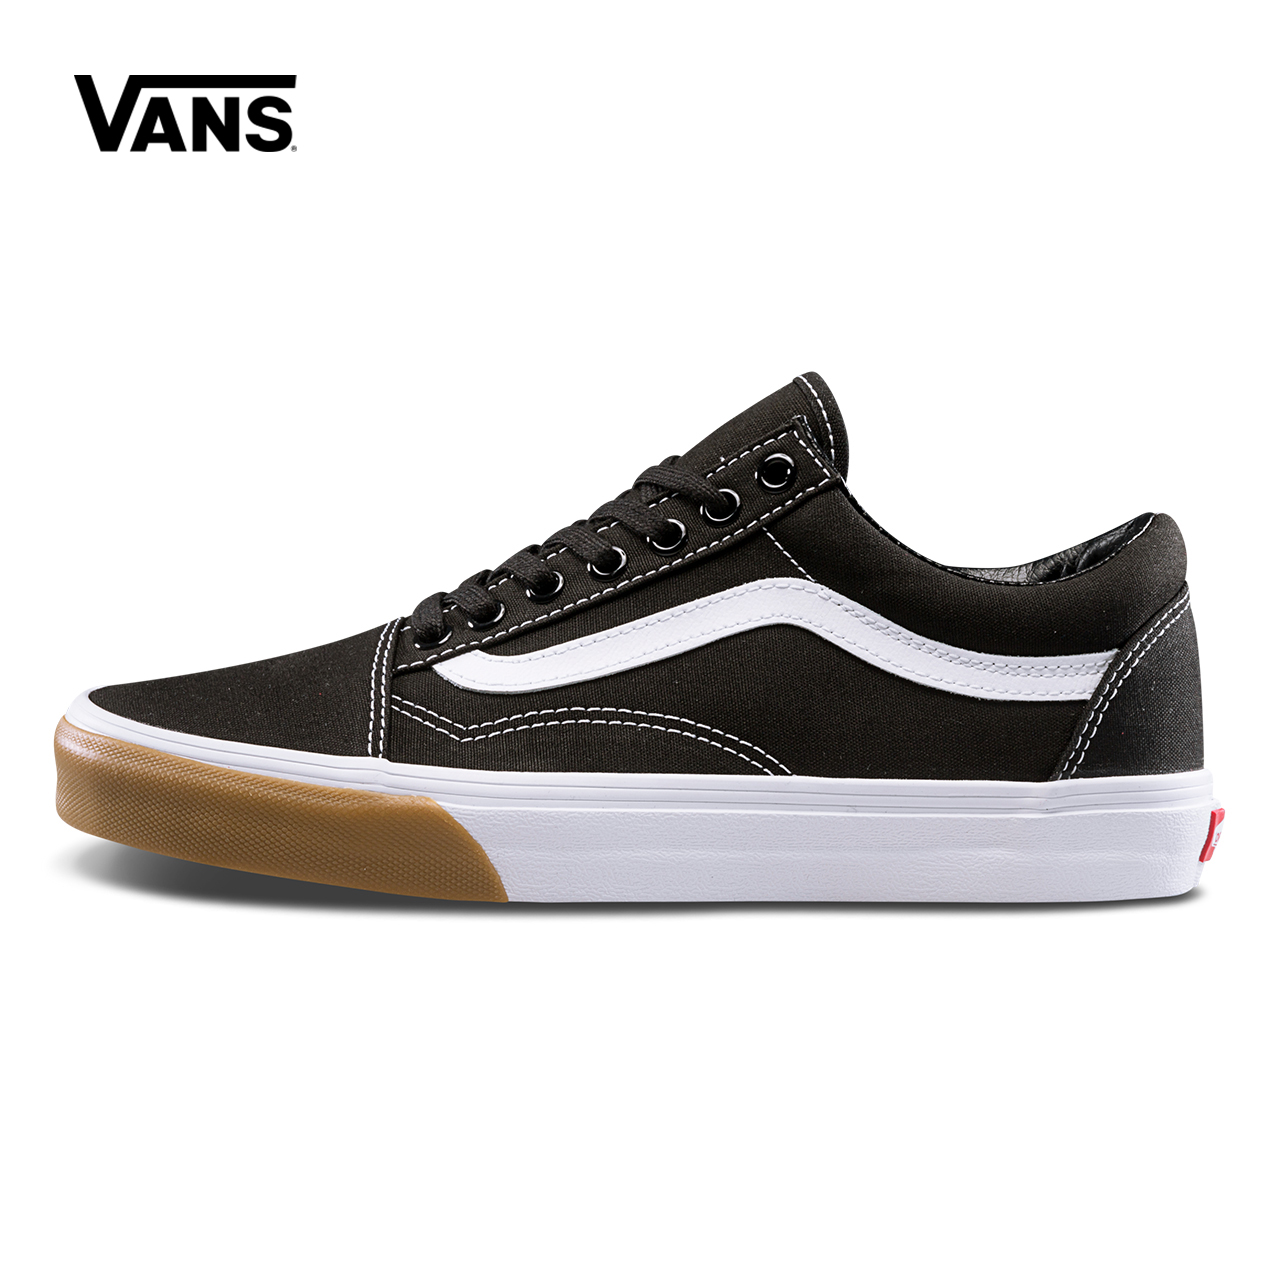 Original Vans Low-Top Male Skateboarding Shoes Old Skool Mens Sport Shoes Canvas Sneakers Breathable Leisure Black